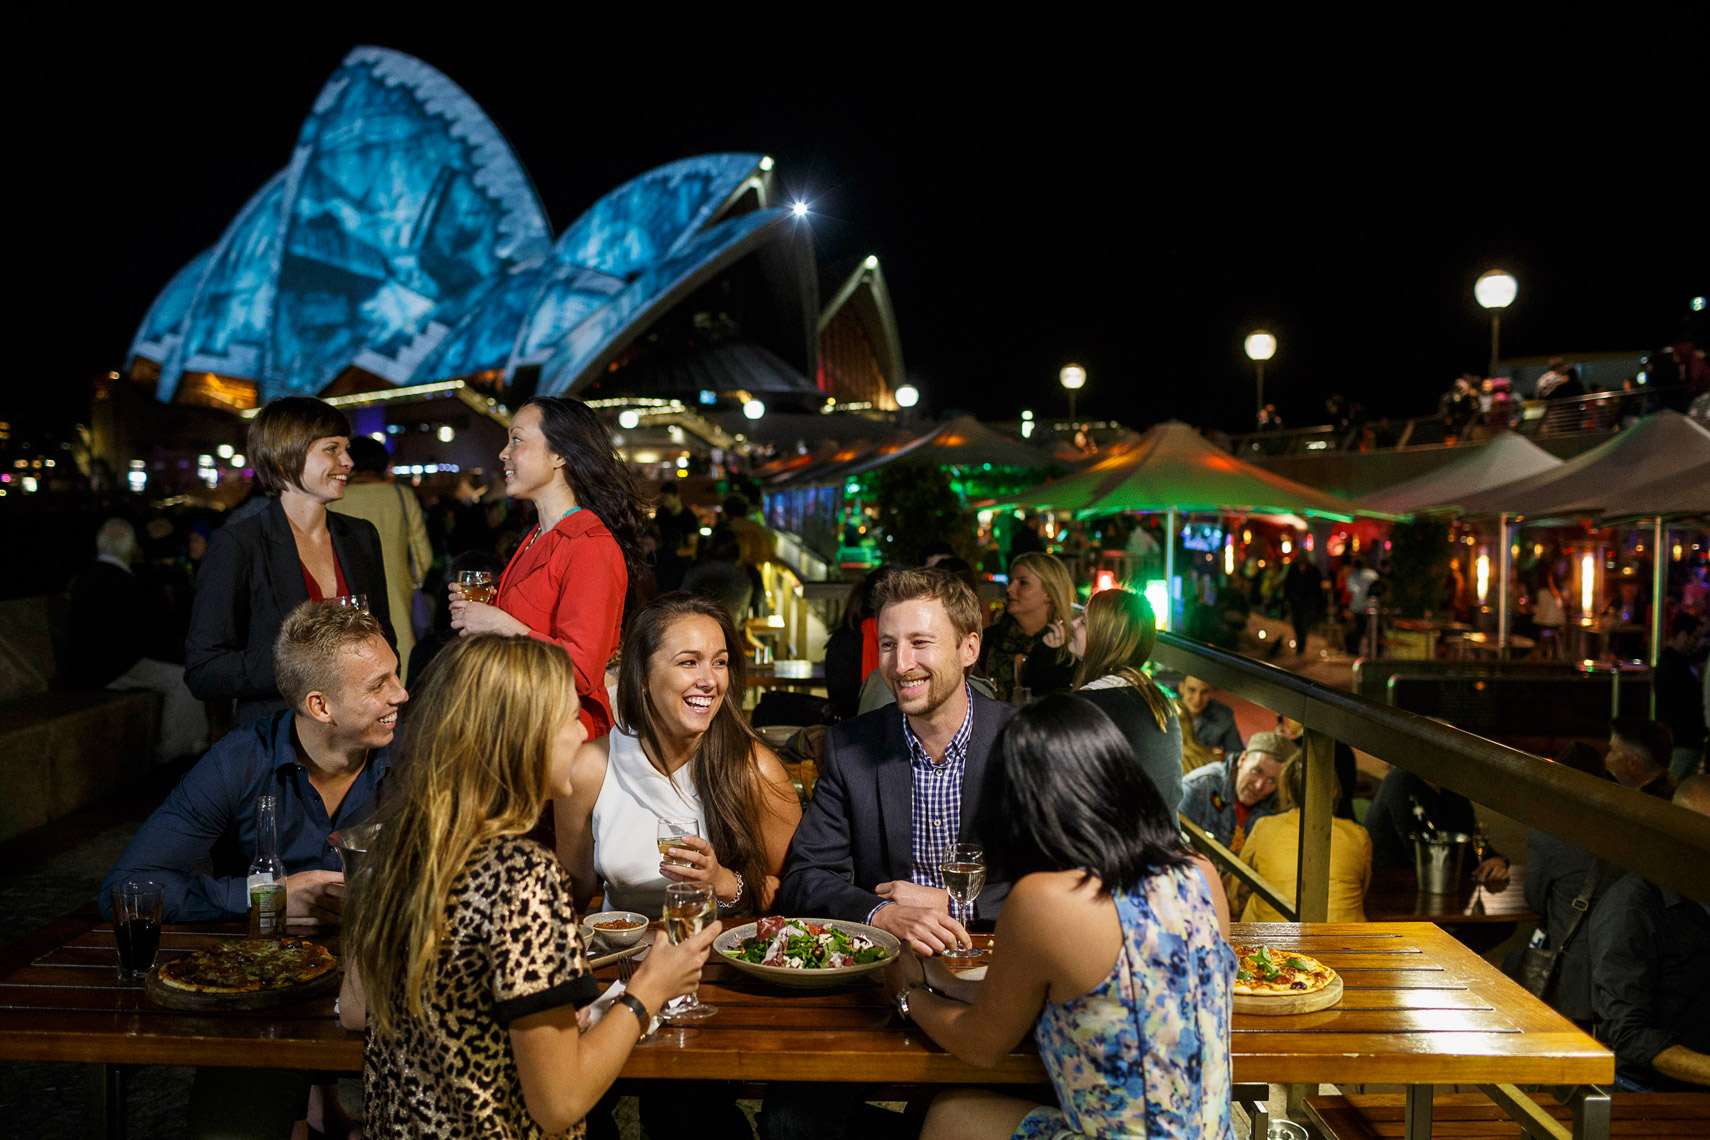 Vivid-Sydney_Opera-Bar_Sydney-Opera-House_James-Horan_DNSW 051